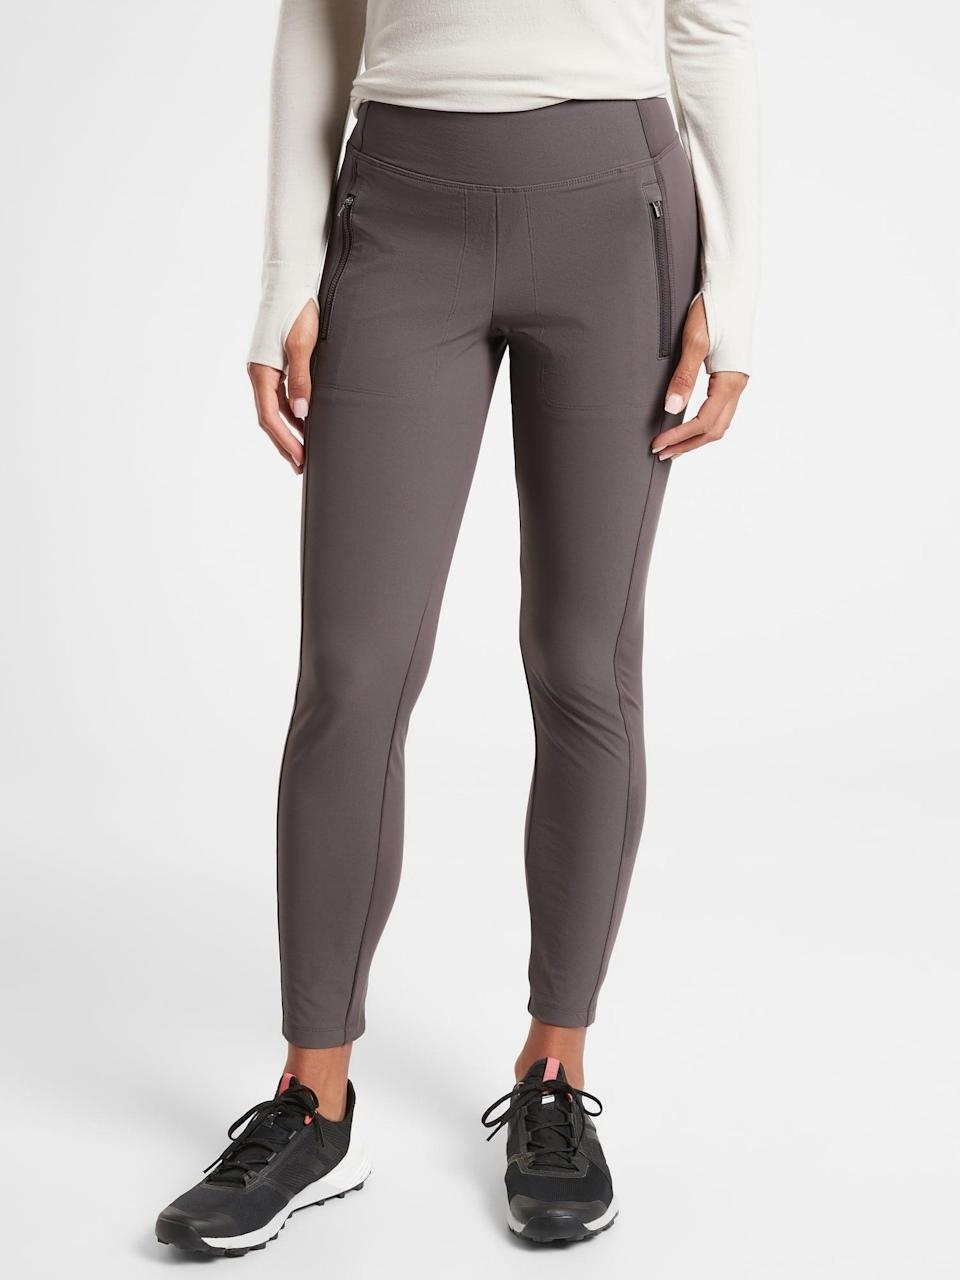 <p>This cozy <span>Athleta Headlands Hybrid Tight</span> ($82, originally $109) is a solid choice for cold-weather outdoor workouts or walks as the full-coverage fabric combines knit and woven bits for maximum mobility.</p>